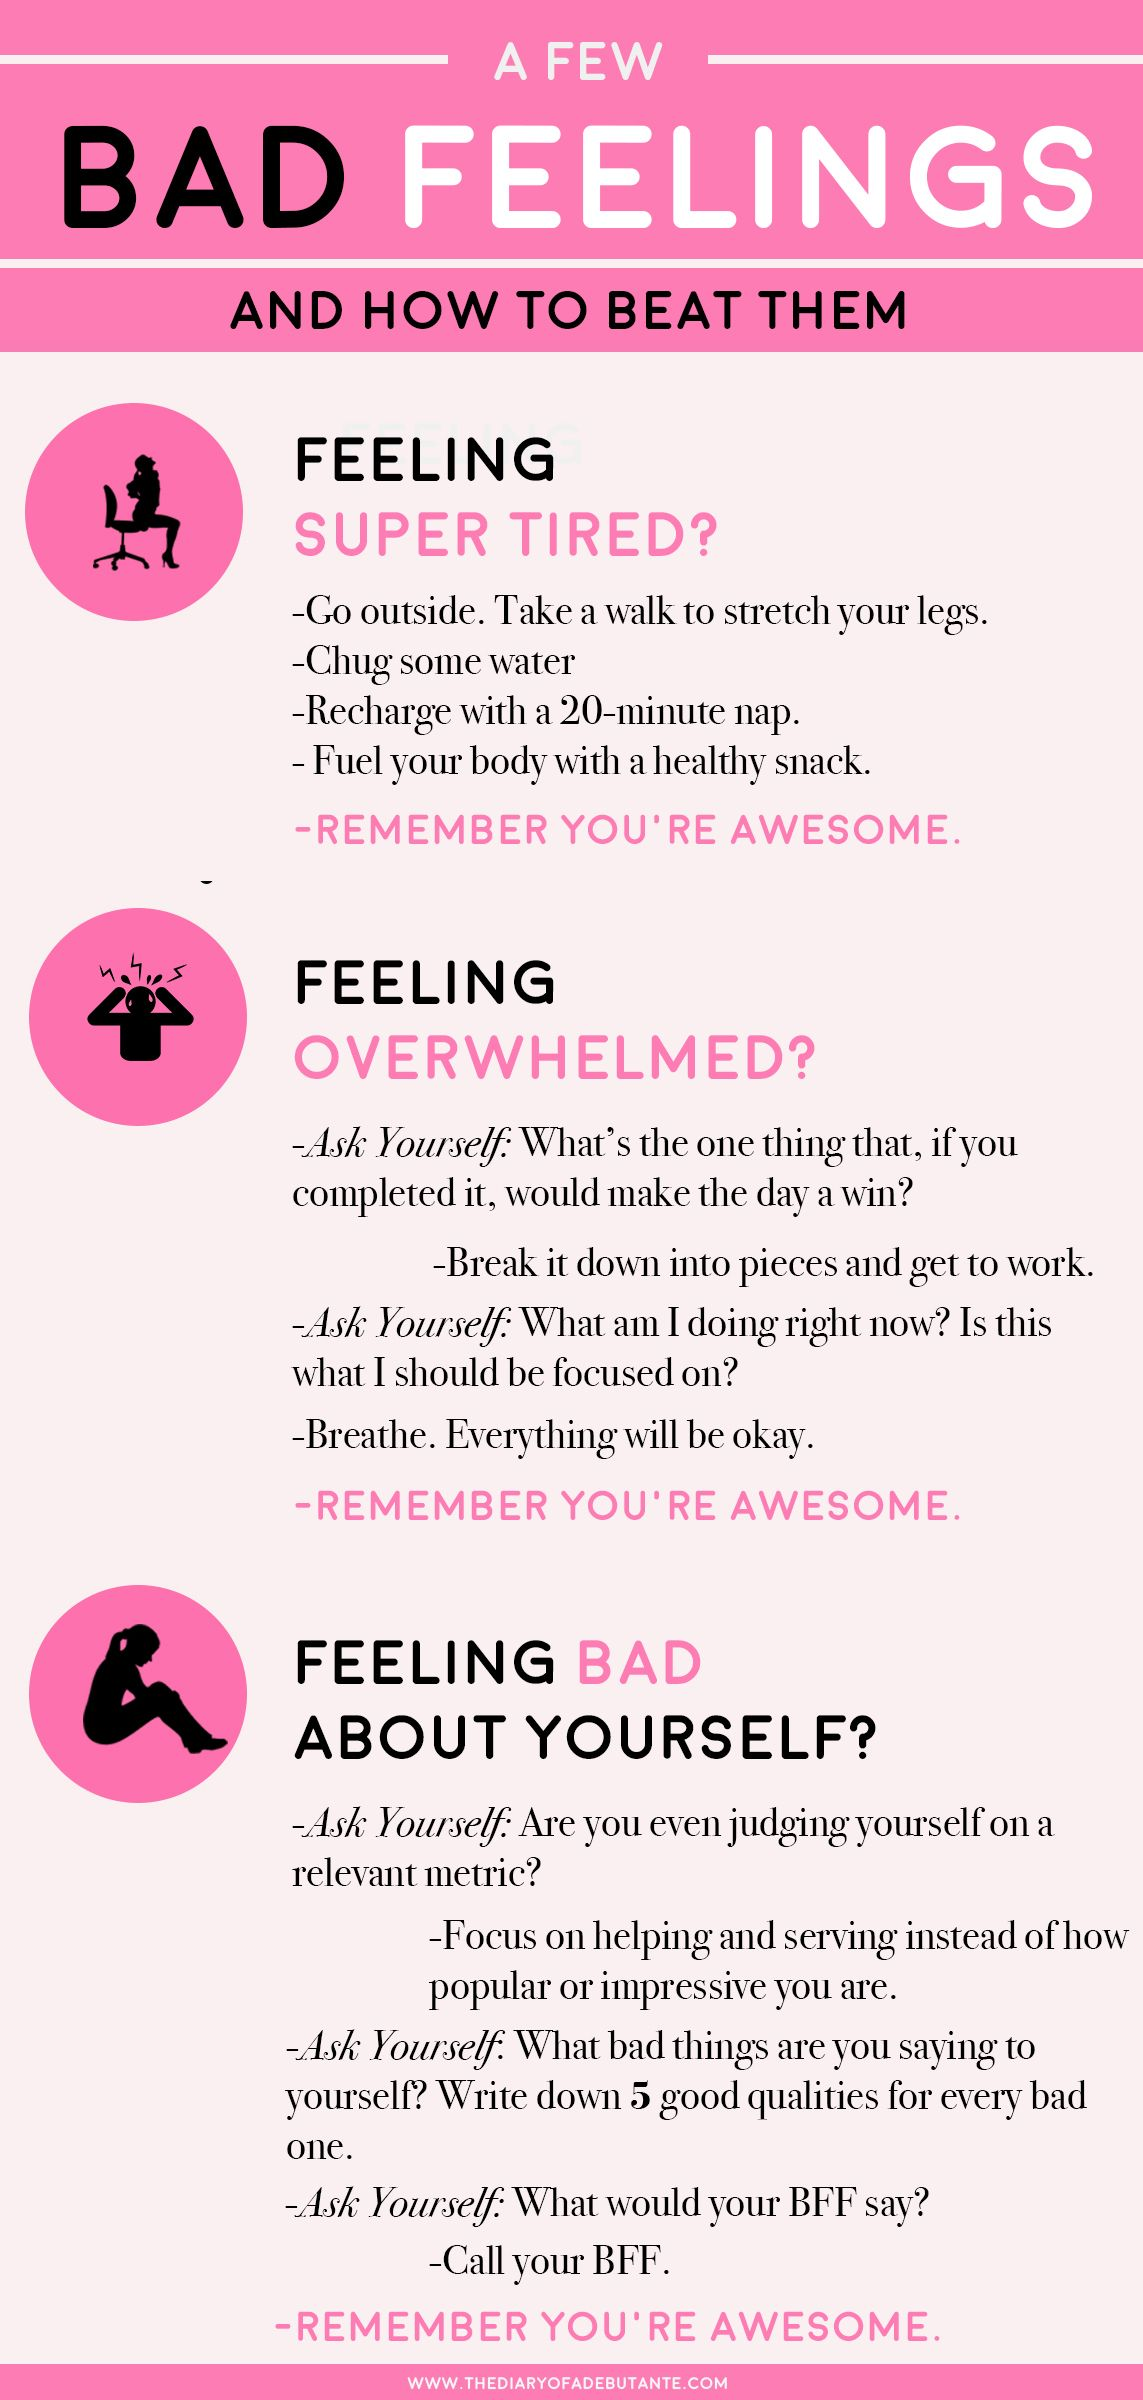 Simple Positive Thinking Techniques To Help Conquer The